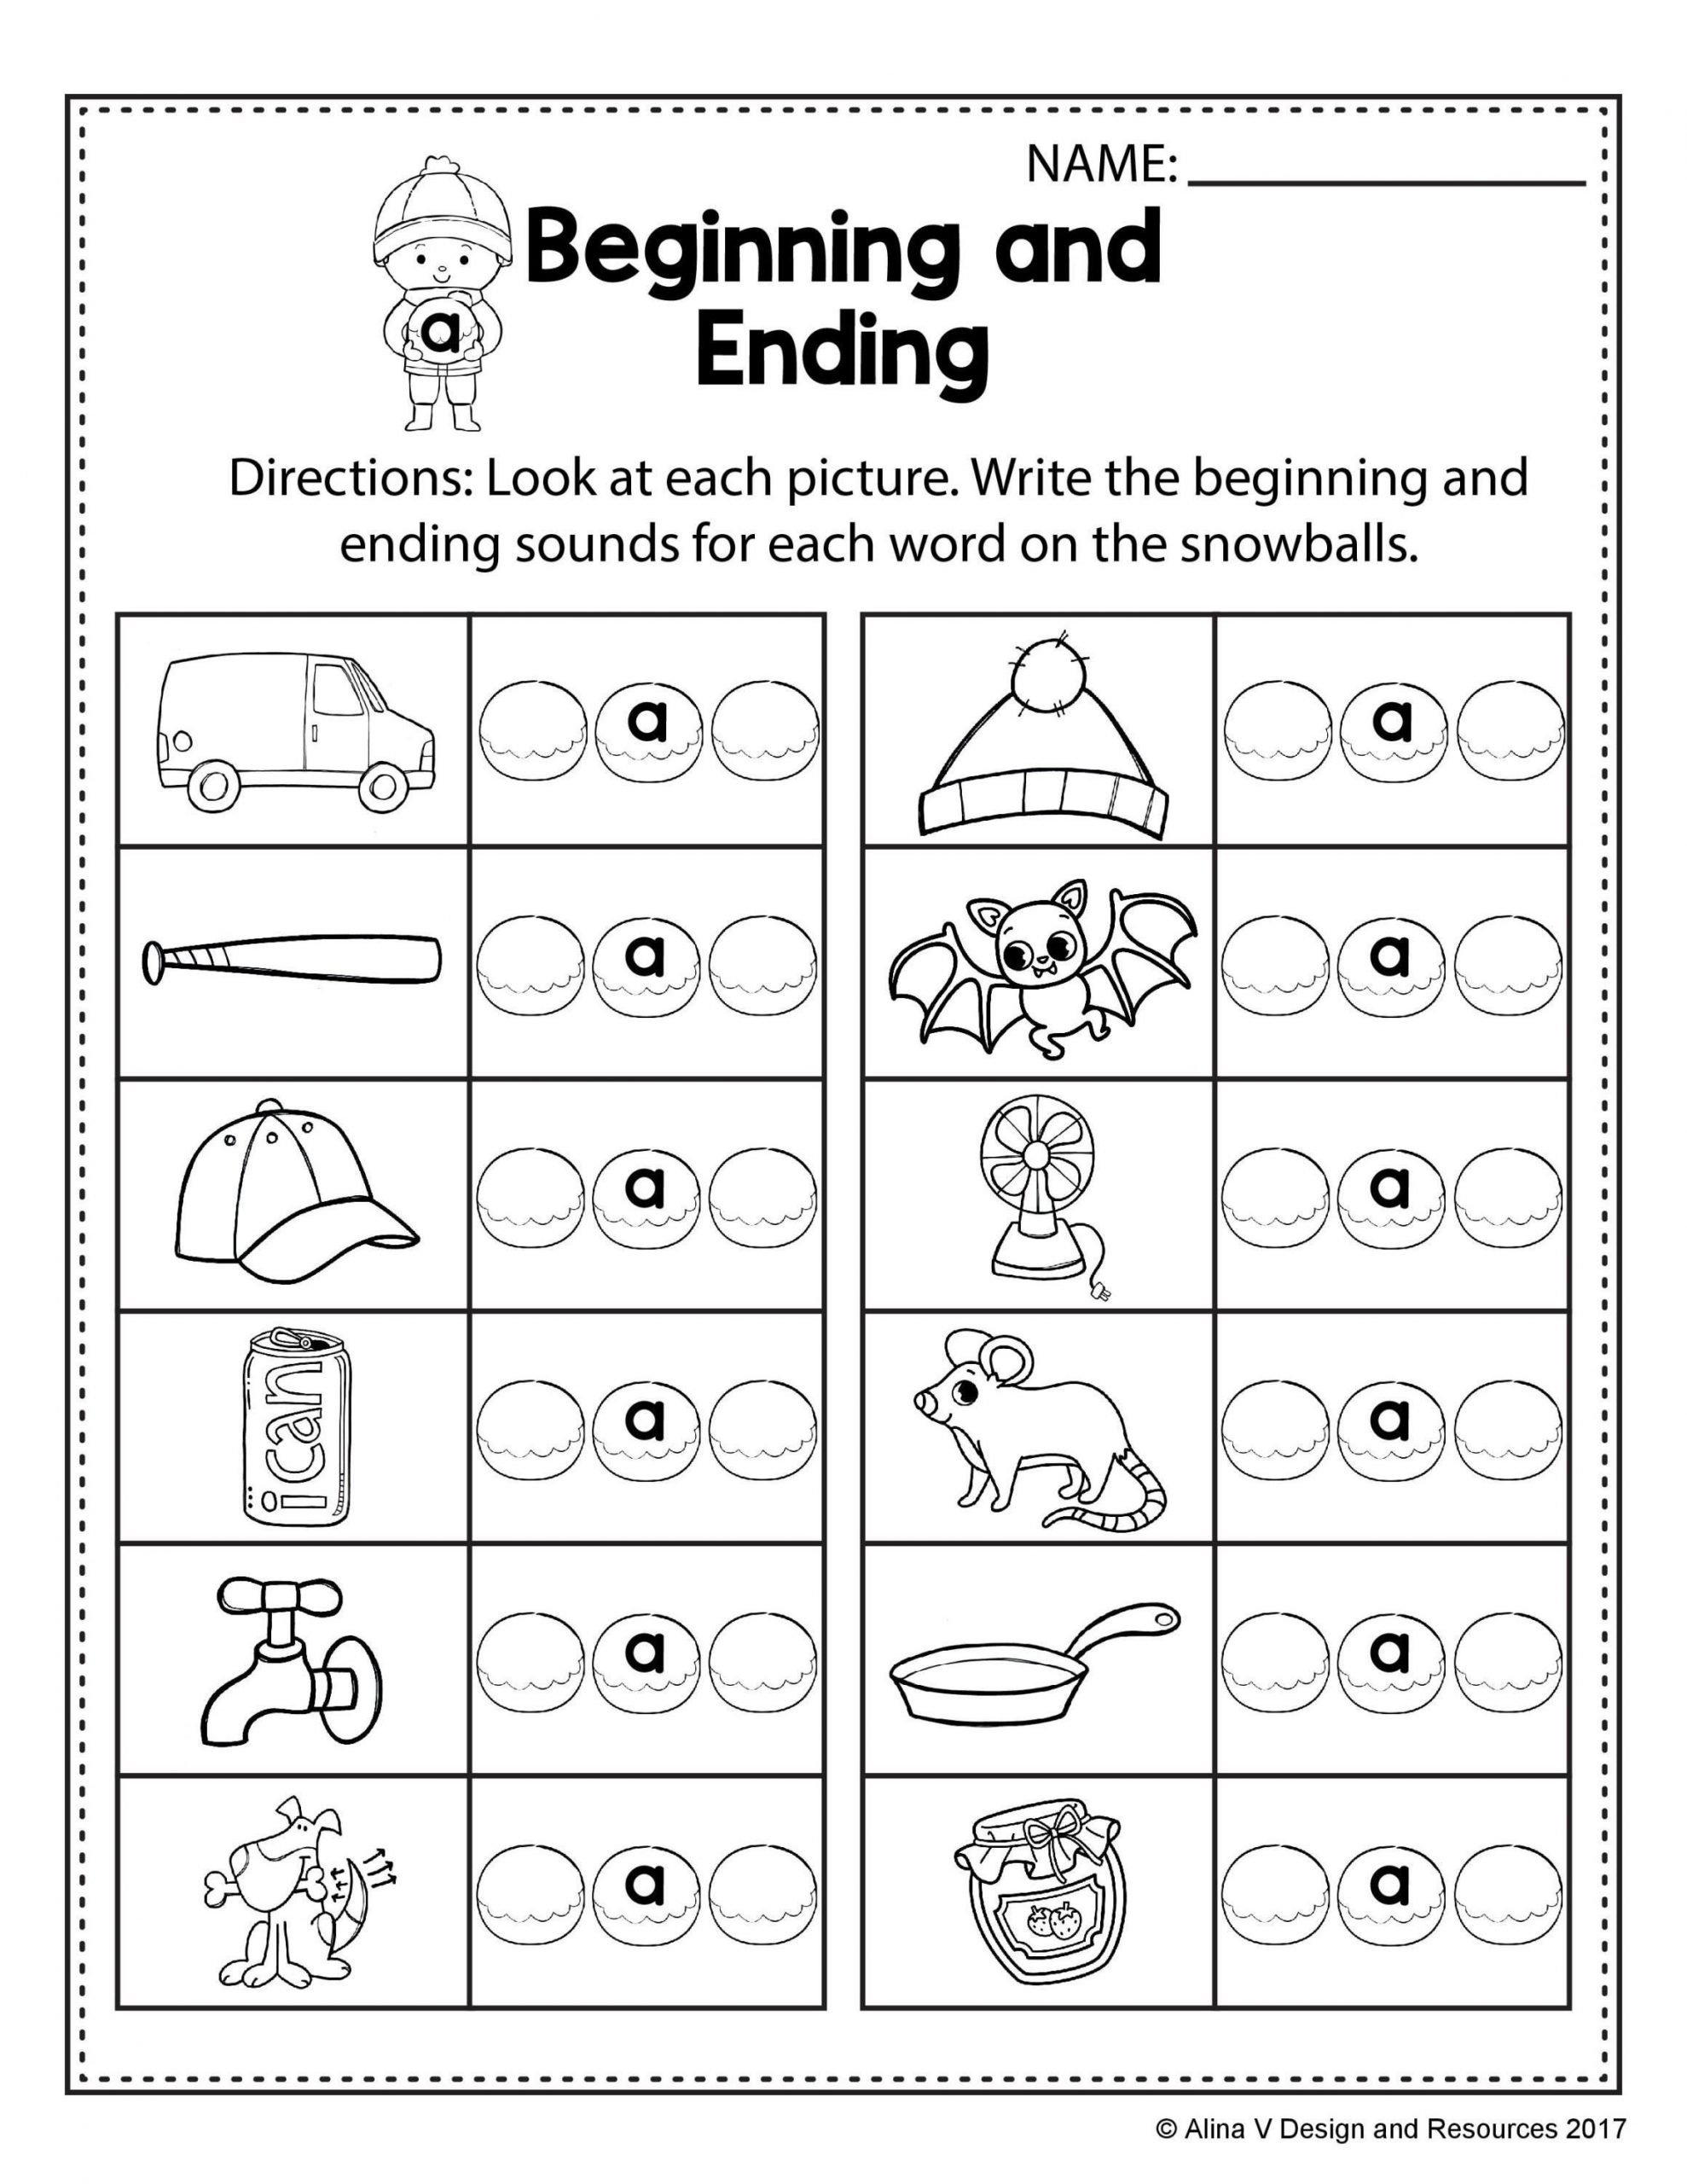 worksheet converting improper fractions to mixed numbers print your and ending sounds worksheets pdf